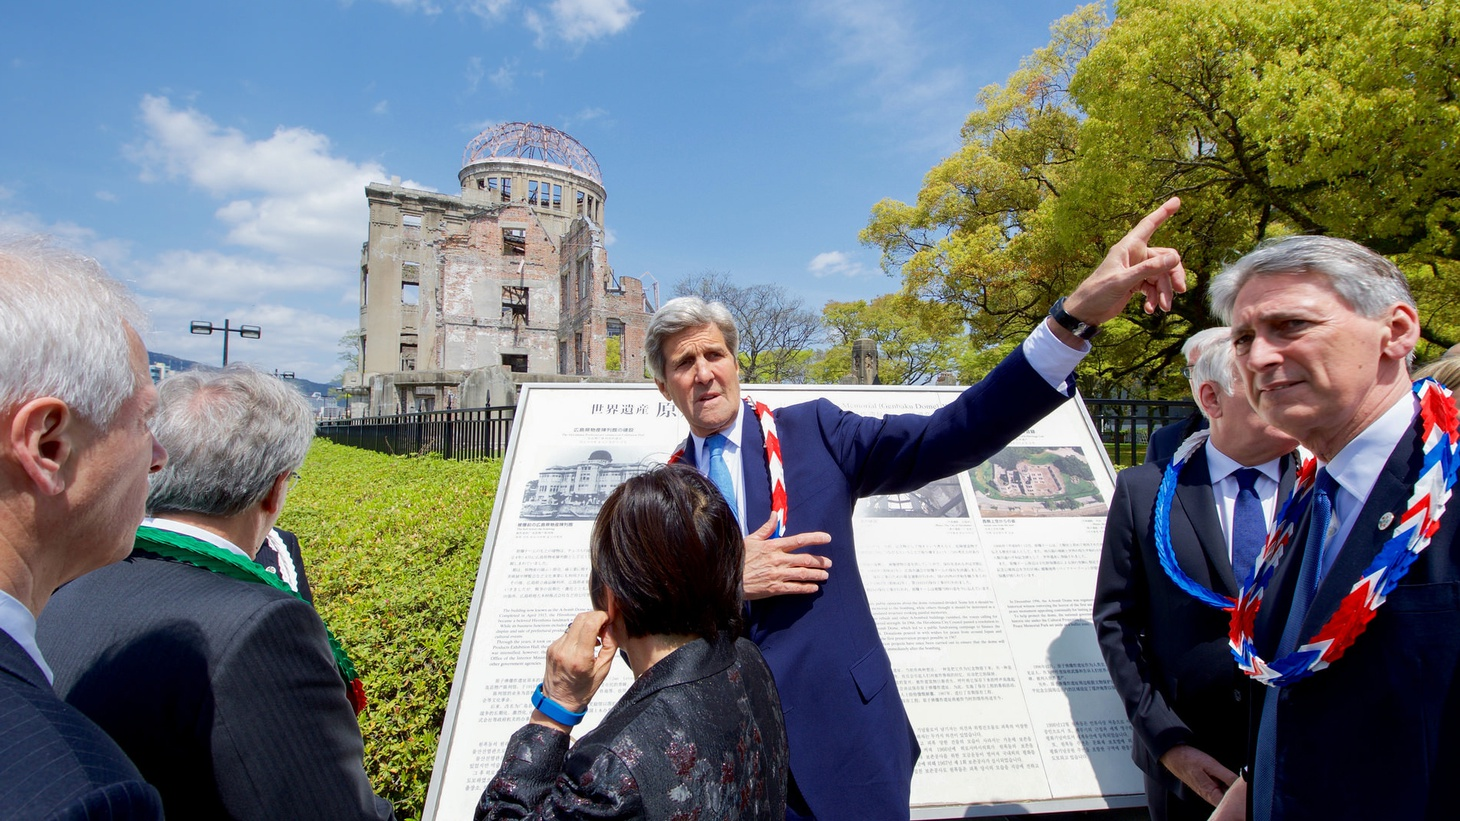 Seventy years ago, the United States struck the Japanese cities of Hiroshima and Nagasaki. There's still dispute over whether that was necessary to end World War II. But the force of those blasts, the property damage and loss of life, were so devastating that no such weapon has ever been used again.